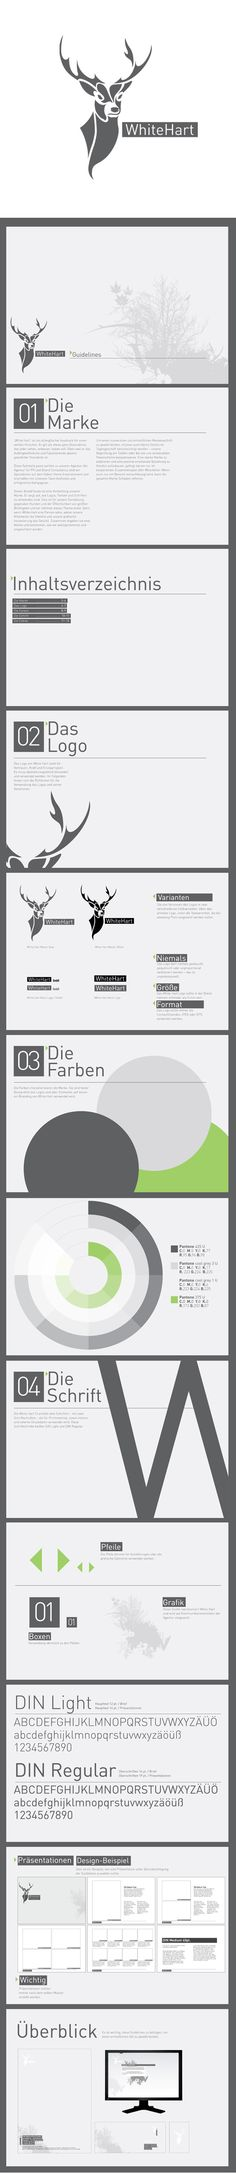 Branding and Guidelines by POPULAR GROUP, via Behance